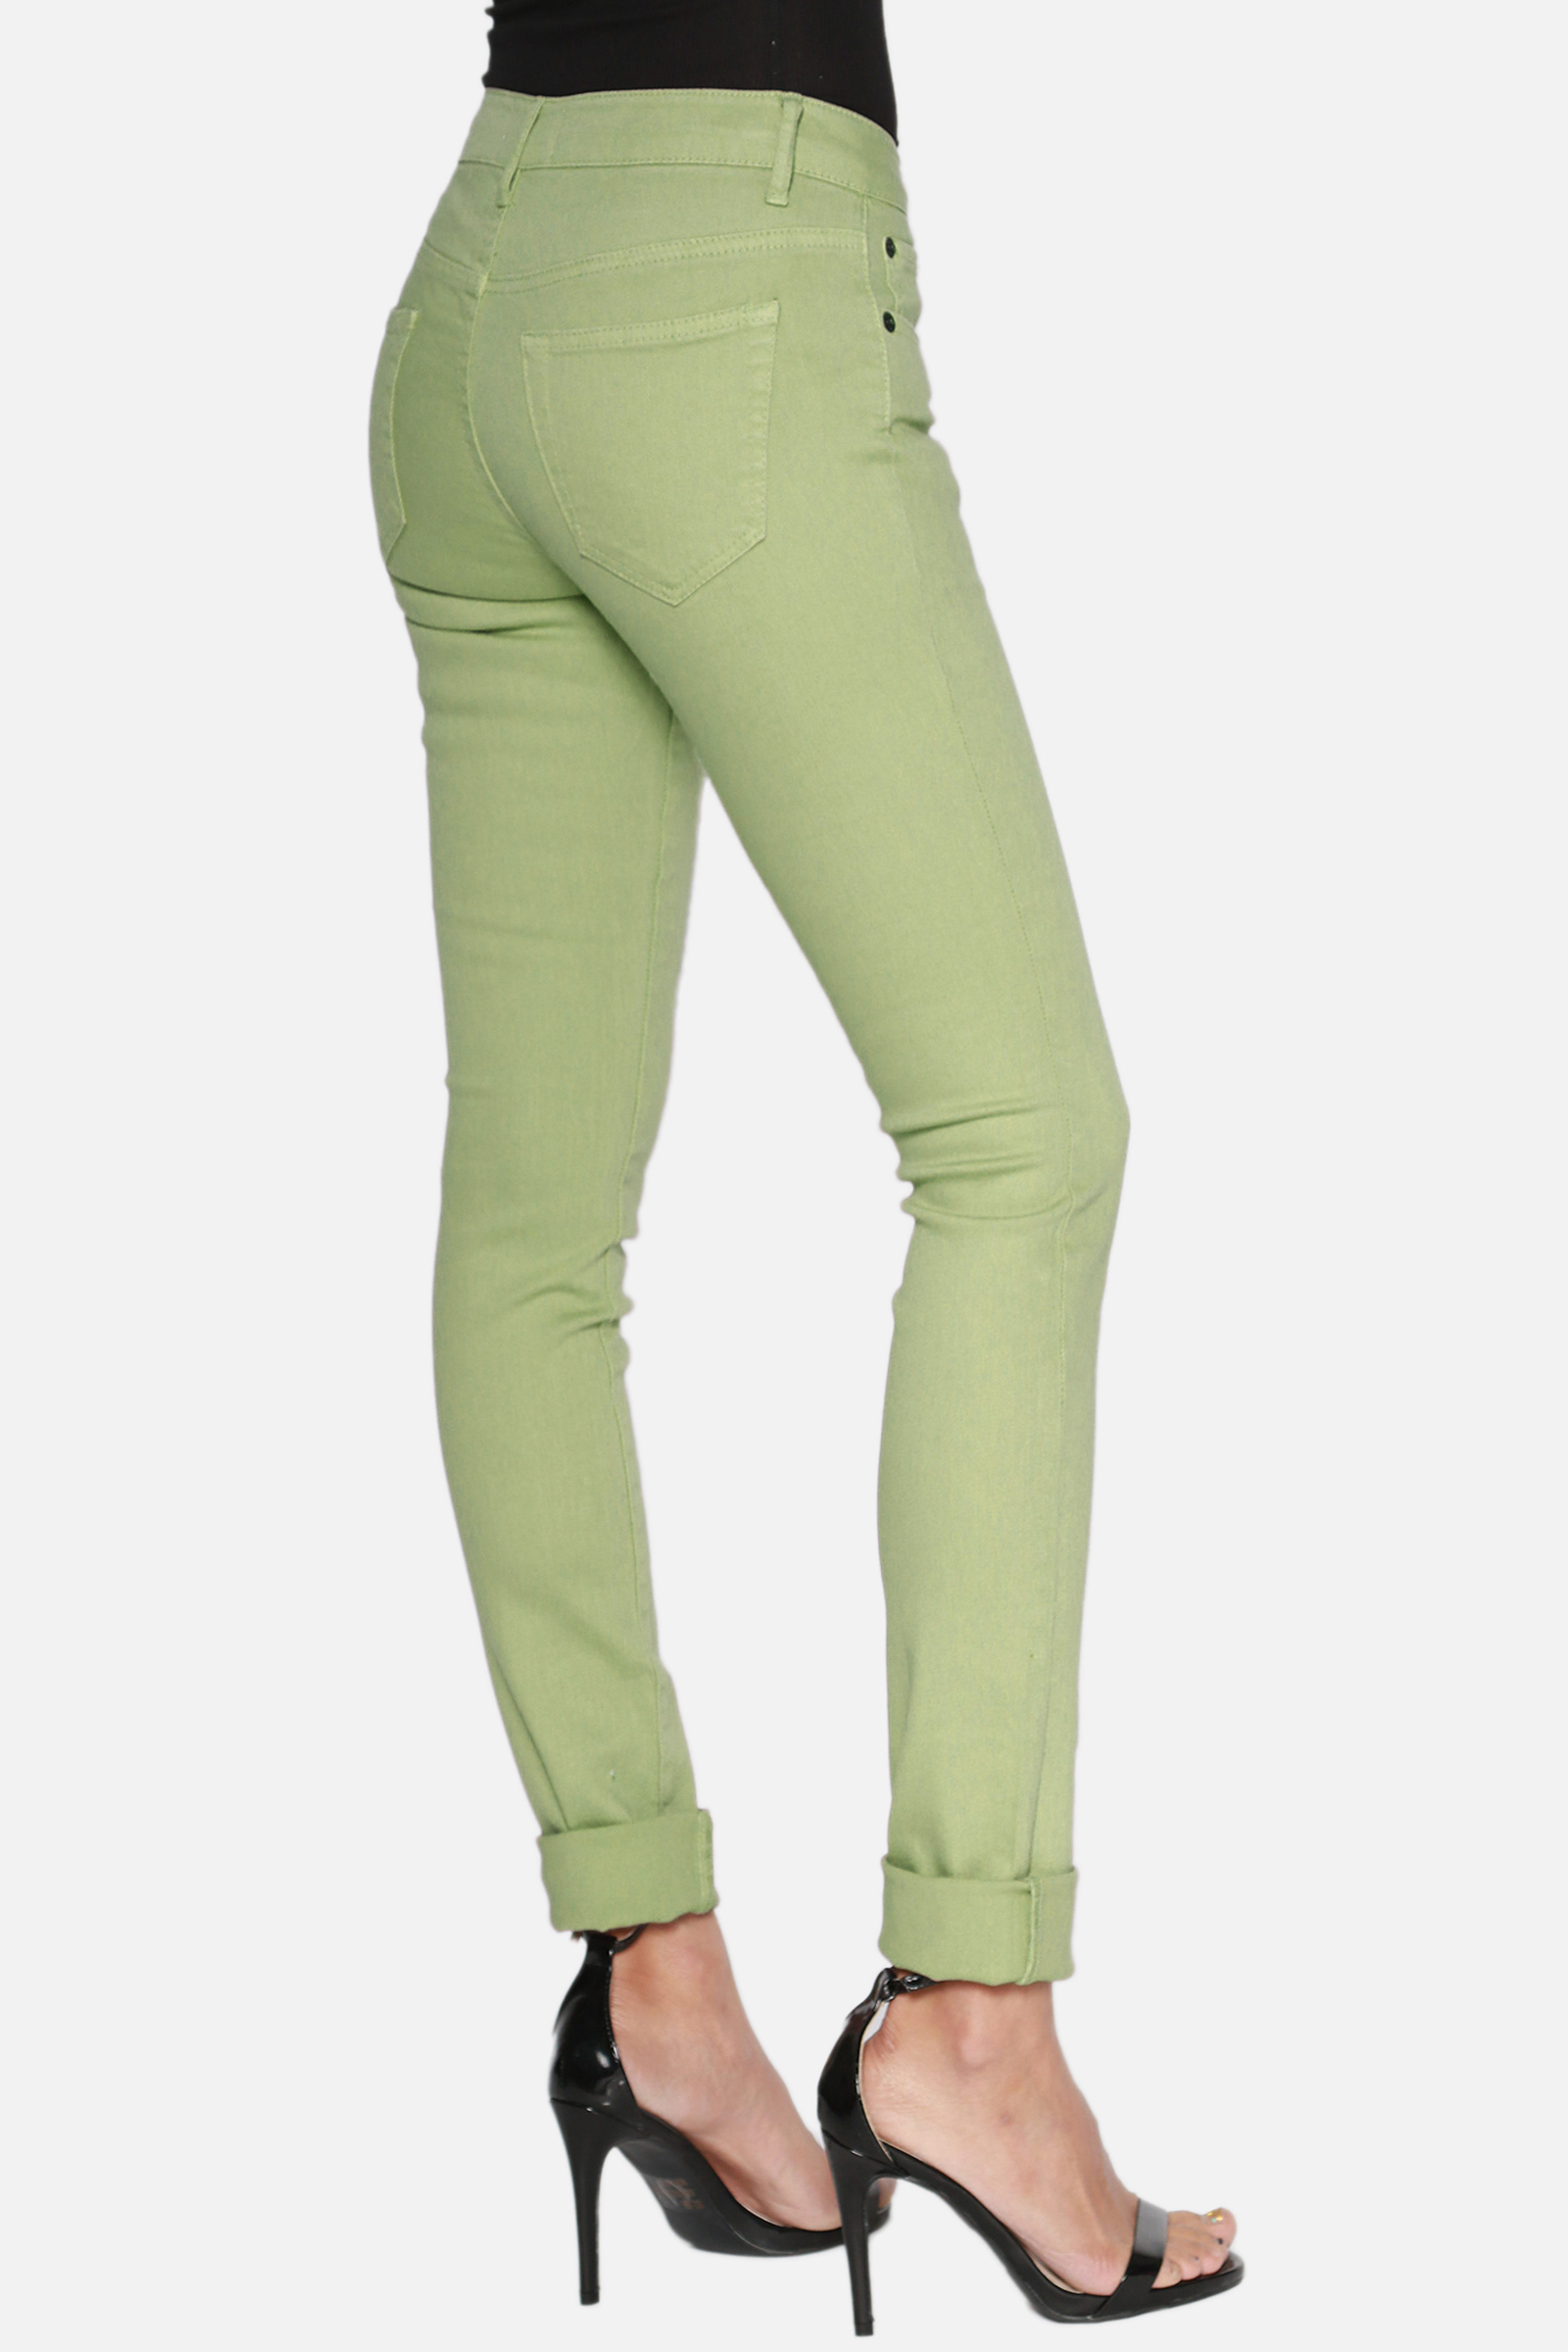 Women S Colored Skinny Jeans